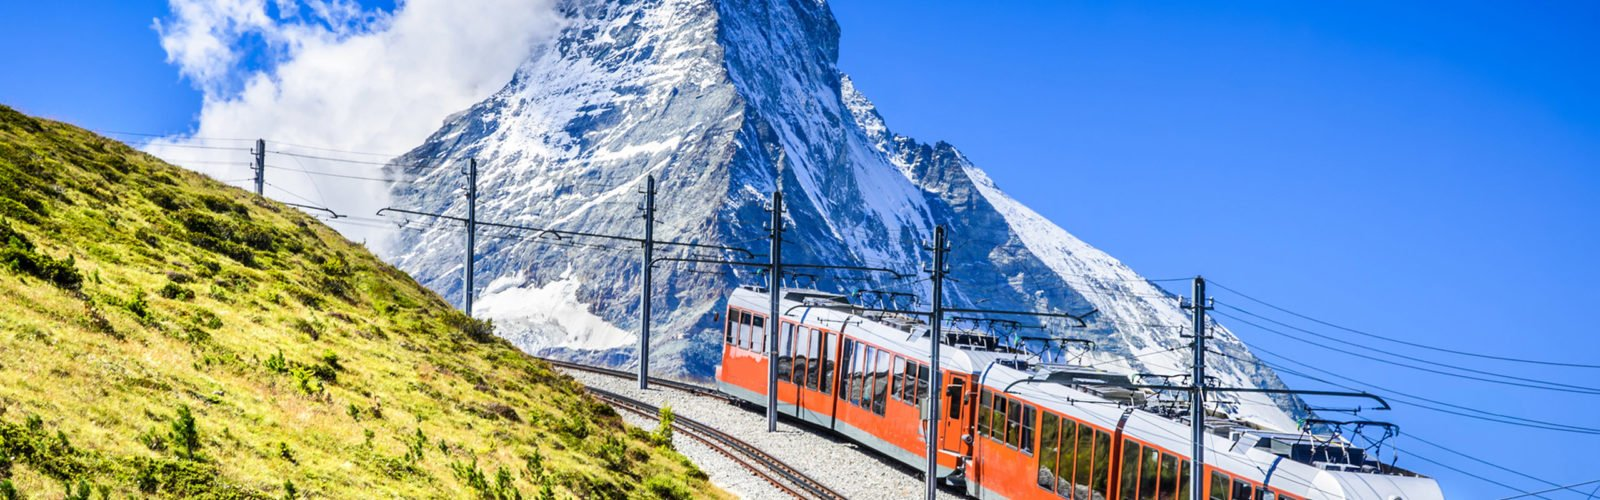 Gornergrat train, Matterhorn, Switzerland